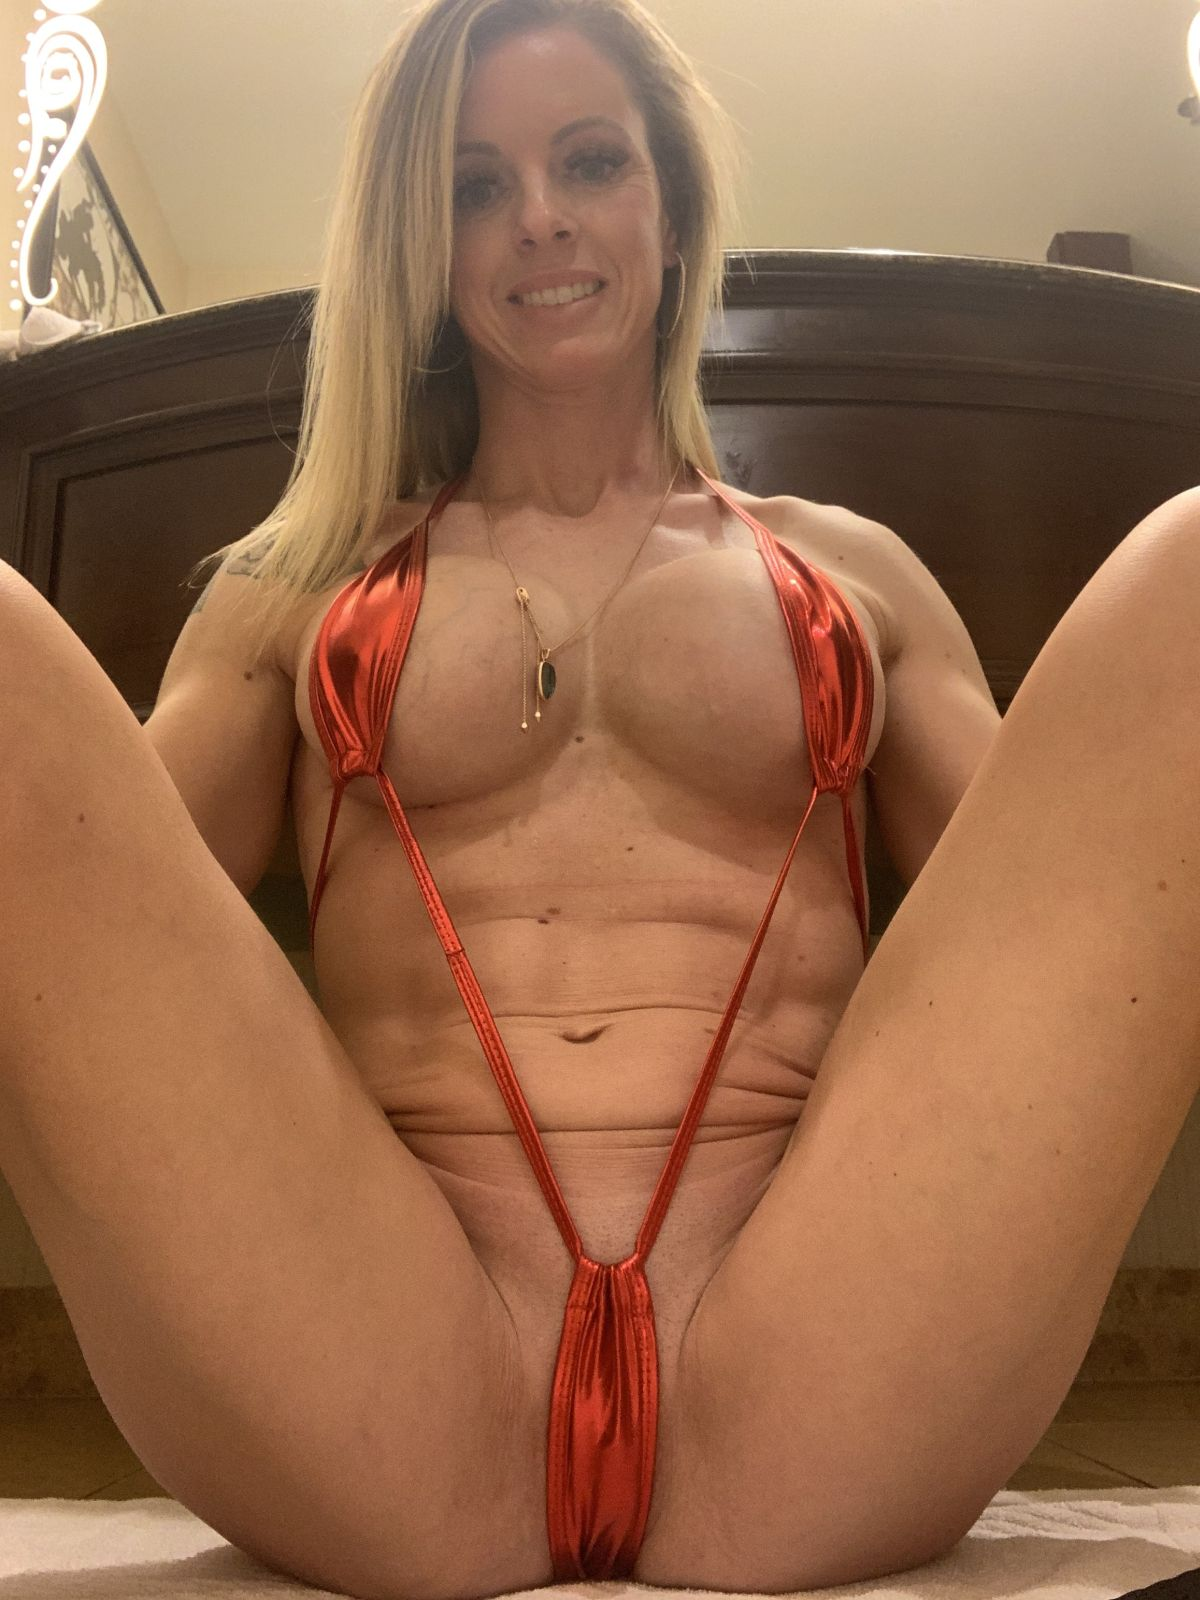 Onlyfans Sweet Vickie onlyfans leaked